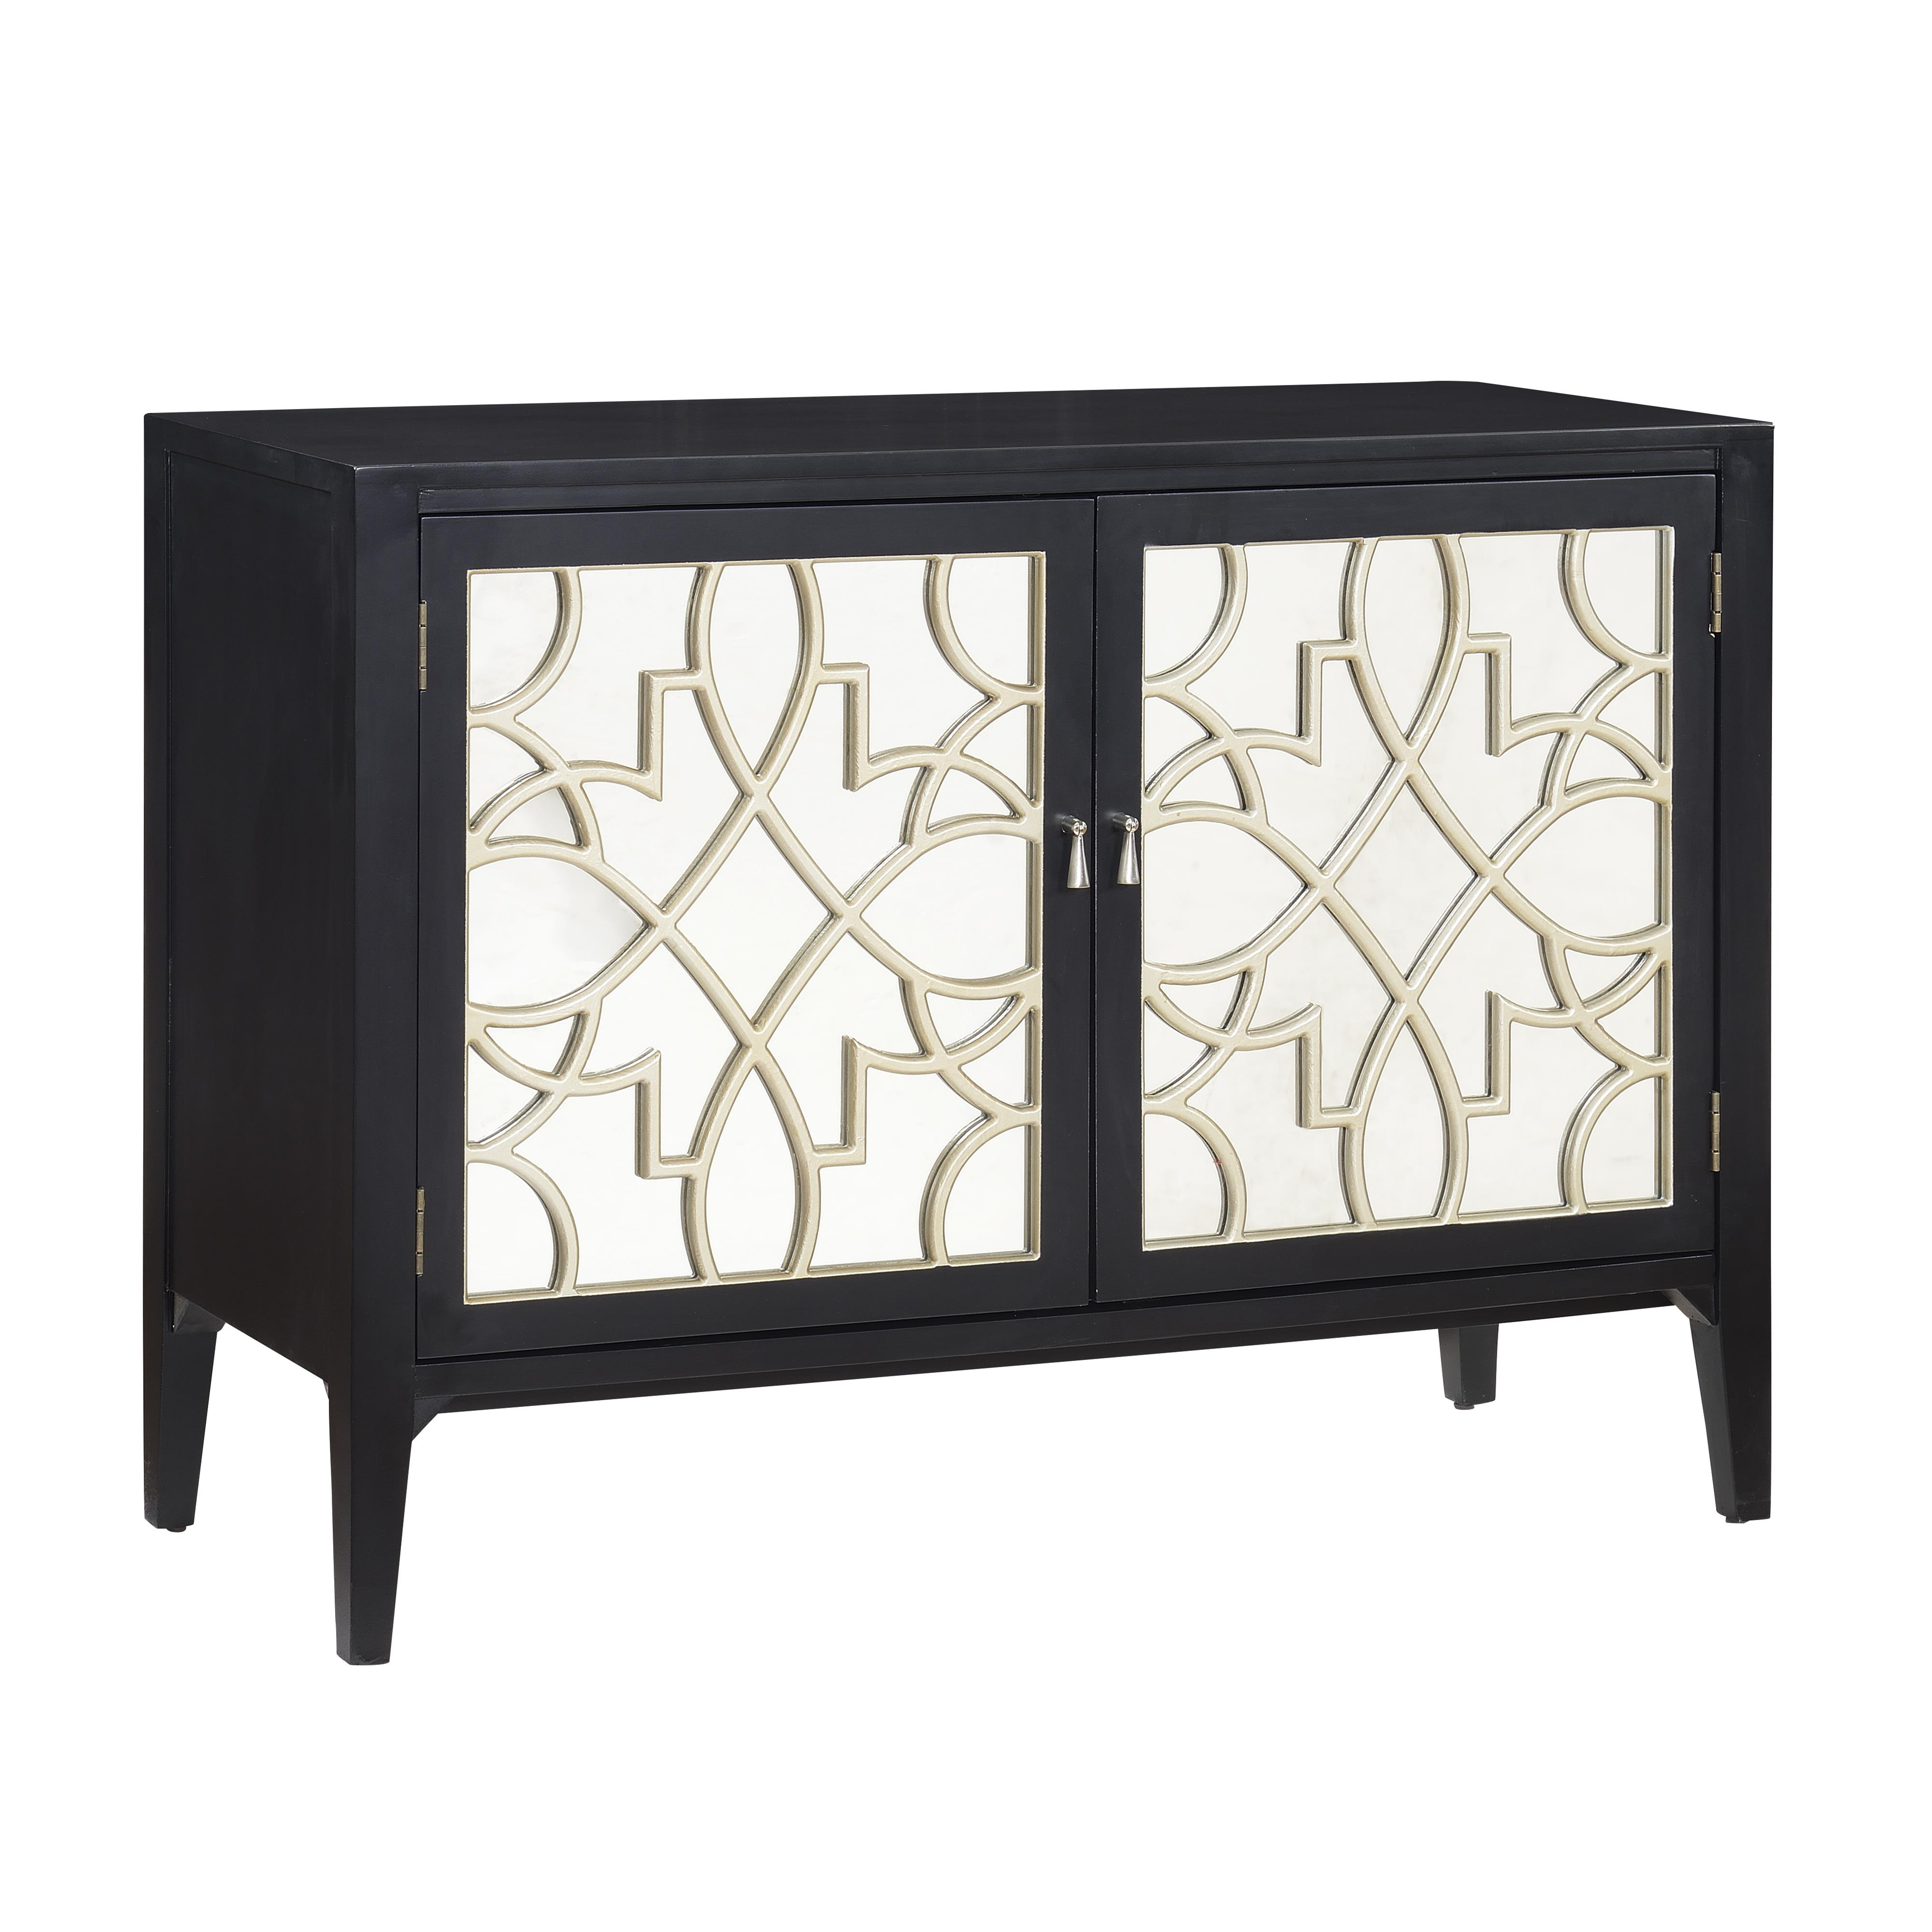 Coast to Coast Imports Coast to Coast Accents Two Door Cabinet - Item Number: 78672